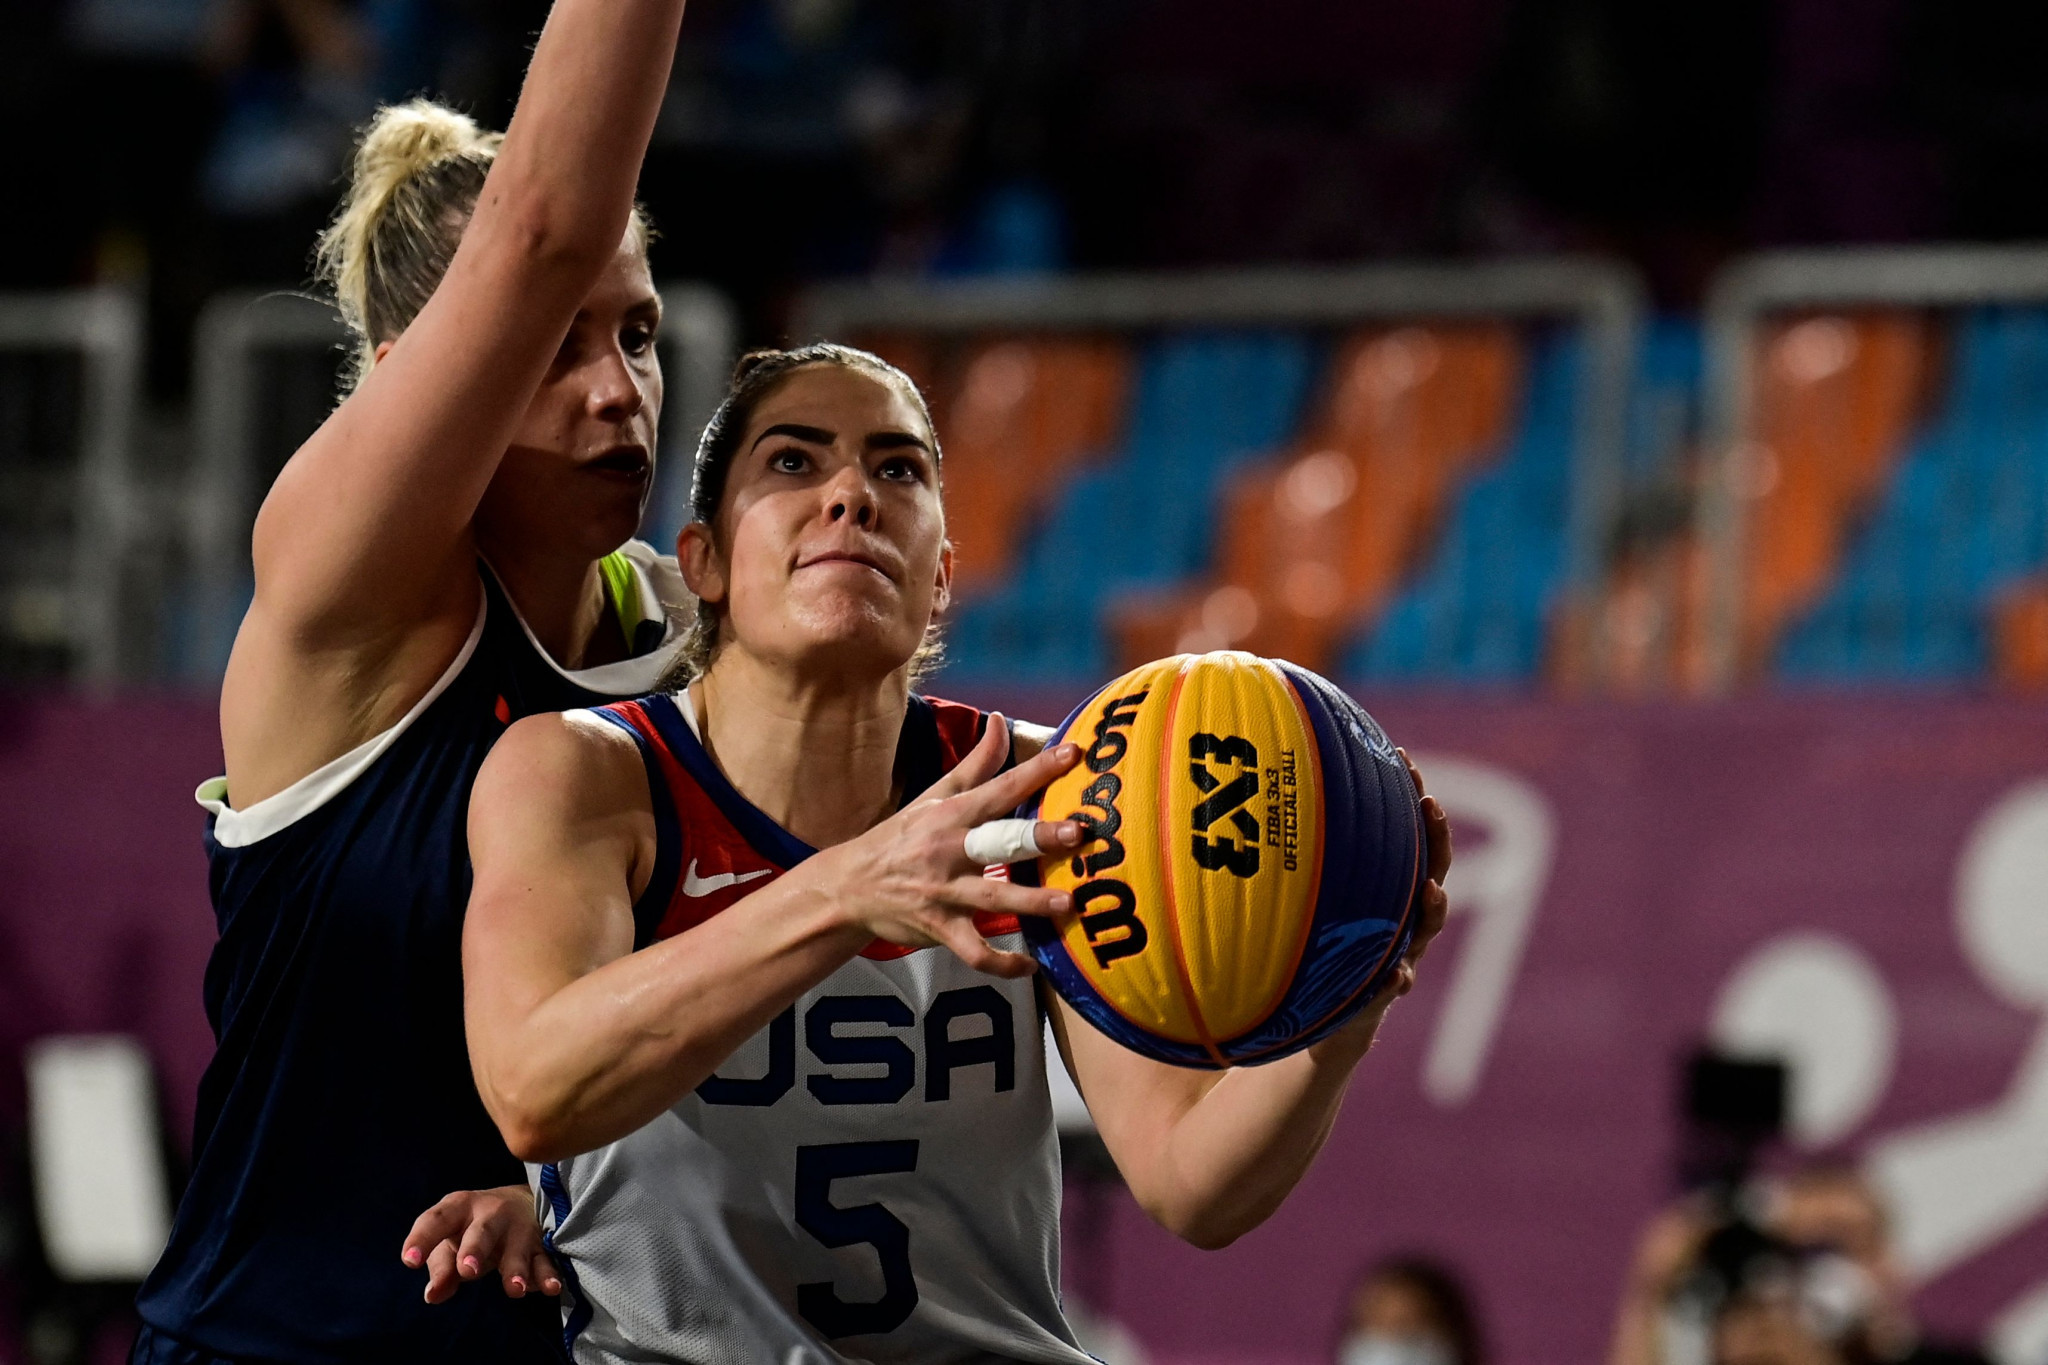 Ukraine and United States off to powerful starts at FIBA 3x3 Under-18 World Cup in Hungary